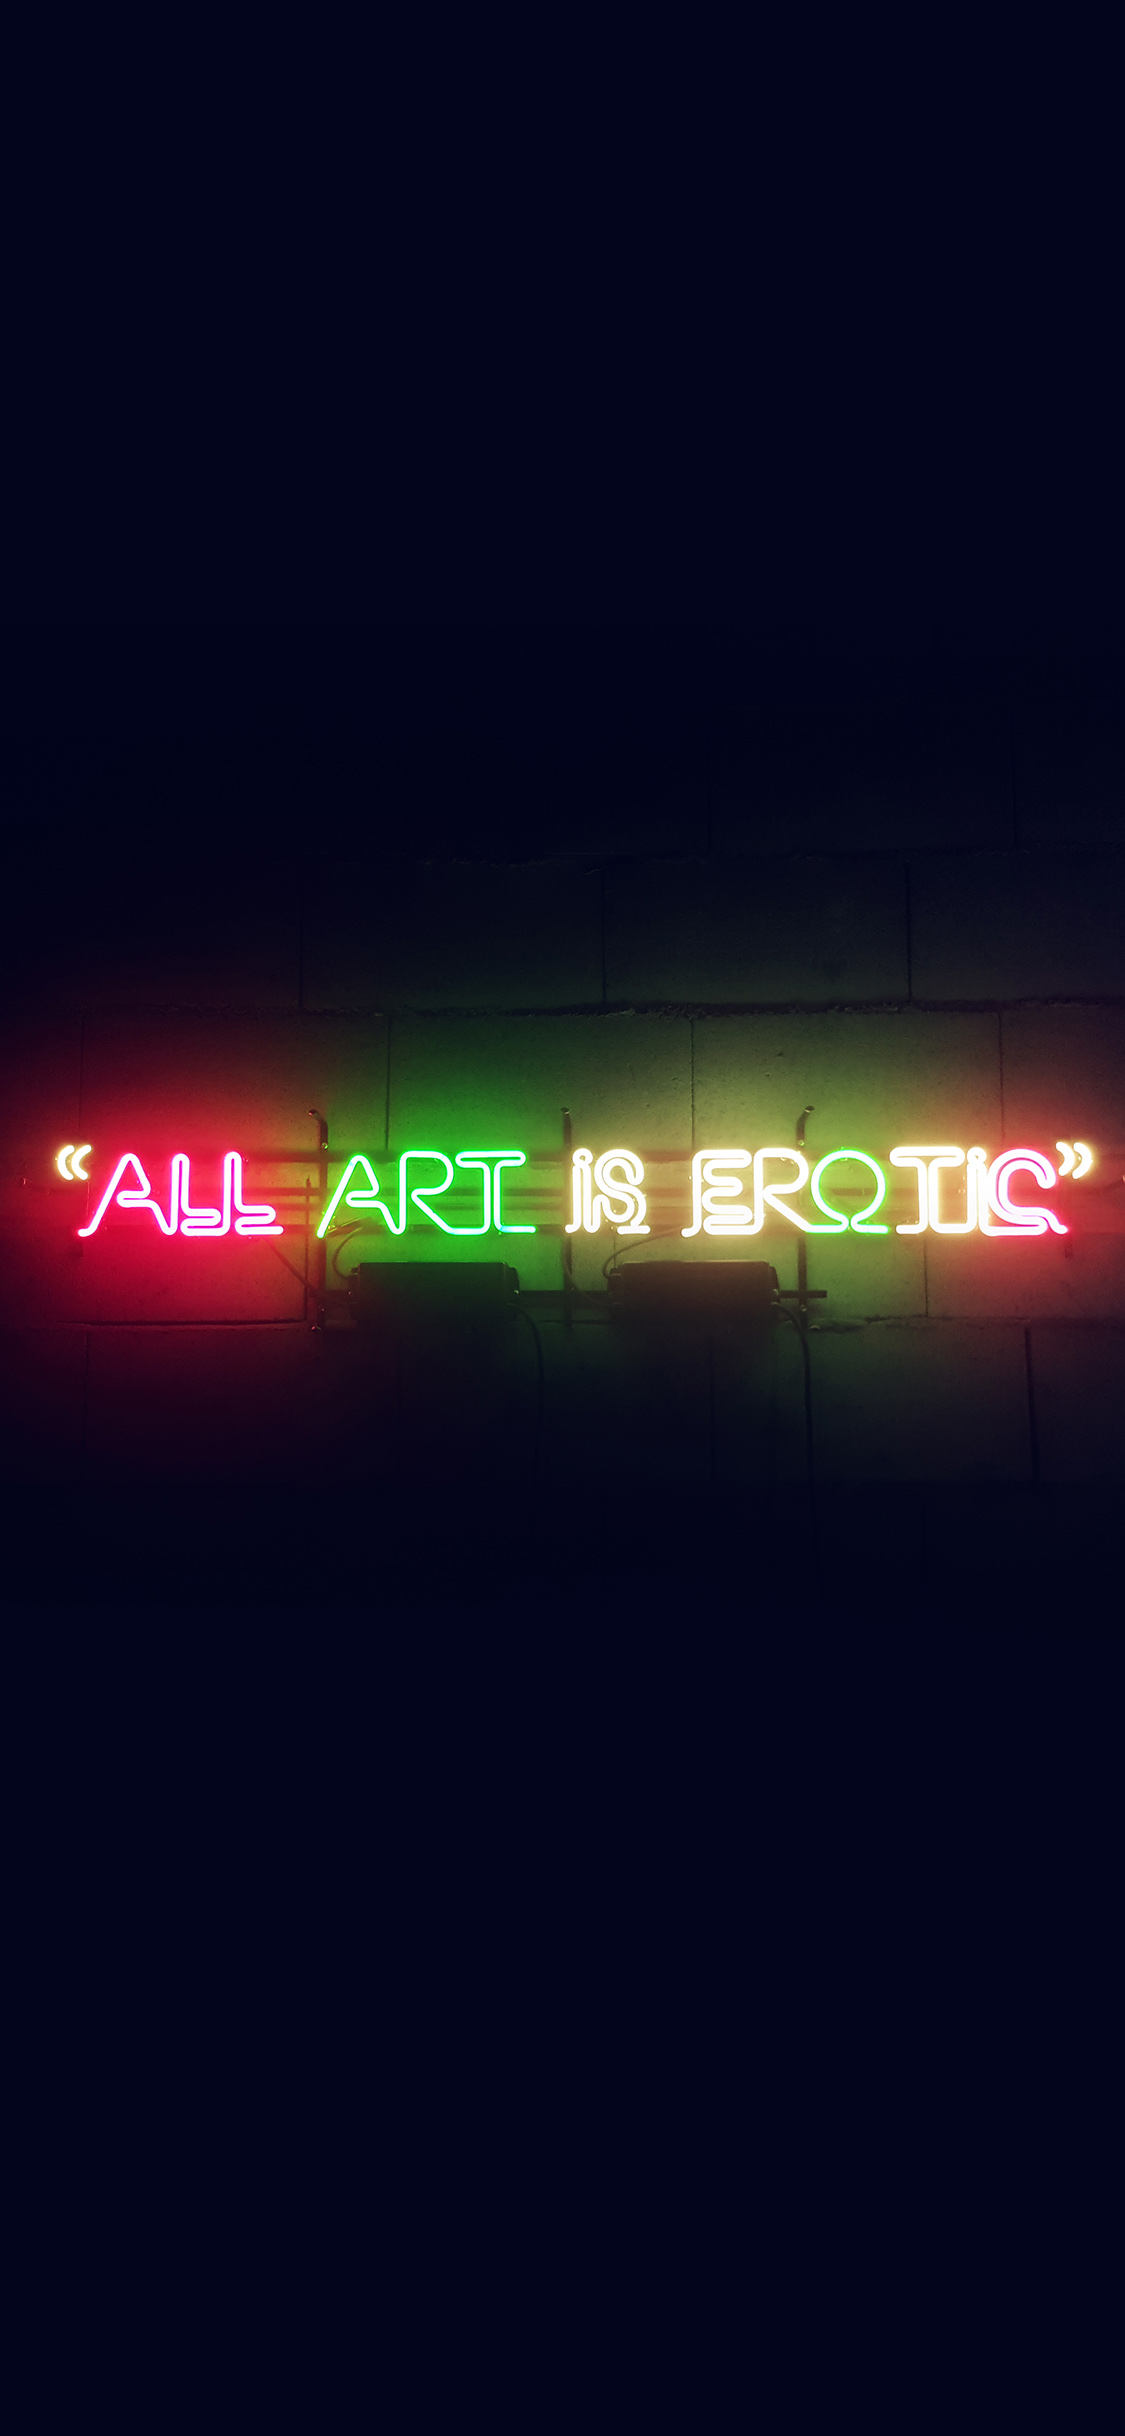 iPhonexpapers.com-Apple-iPhone-wallpaper-az05-all-art-is-erotic-dark-neon-illustration-art-sign